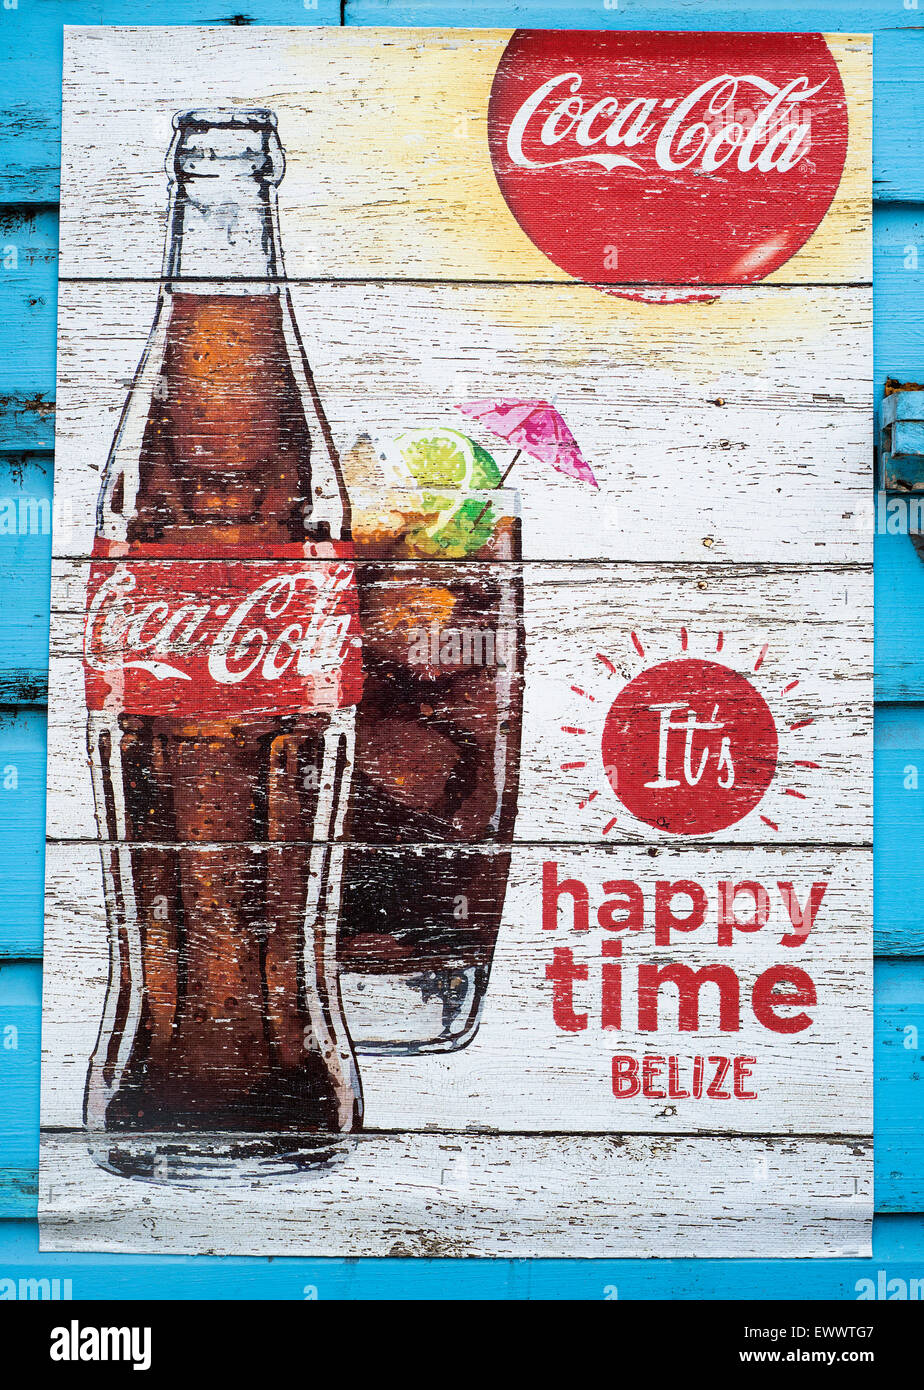 A poster advertisement for coca cola on the side of a wall in Belize. - Stock Image